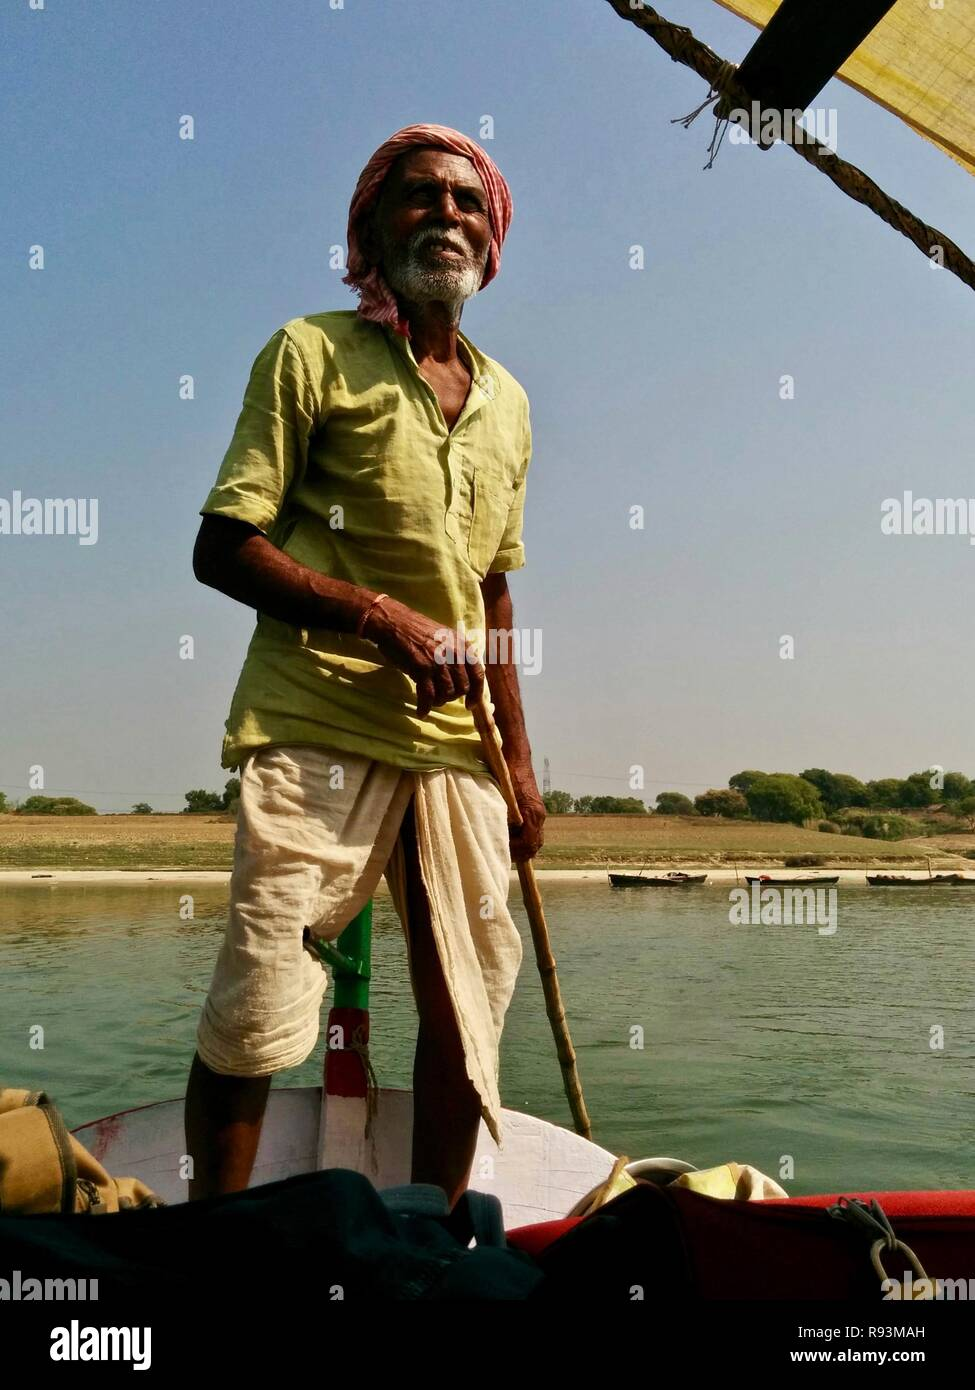 An old boatman steering a sailing boat on the Ganges River in India - Stock Image